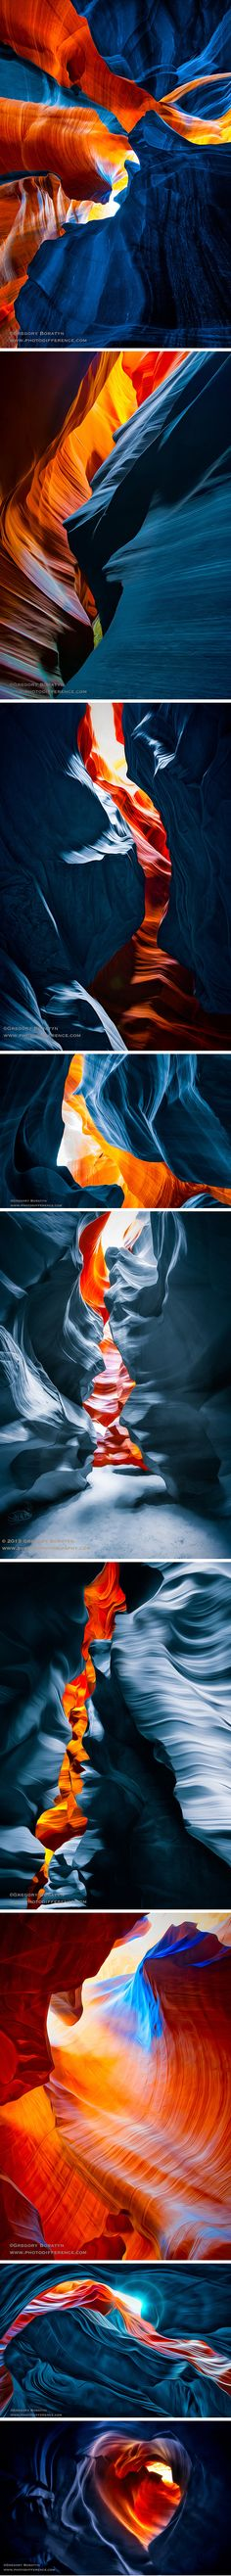 these  artistic cave-photos by Gregory Boratyns  are special for me THE best ,so far...and to think I was getting bored with this subject which has been photographed so much ...lol thank-you Gregory